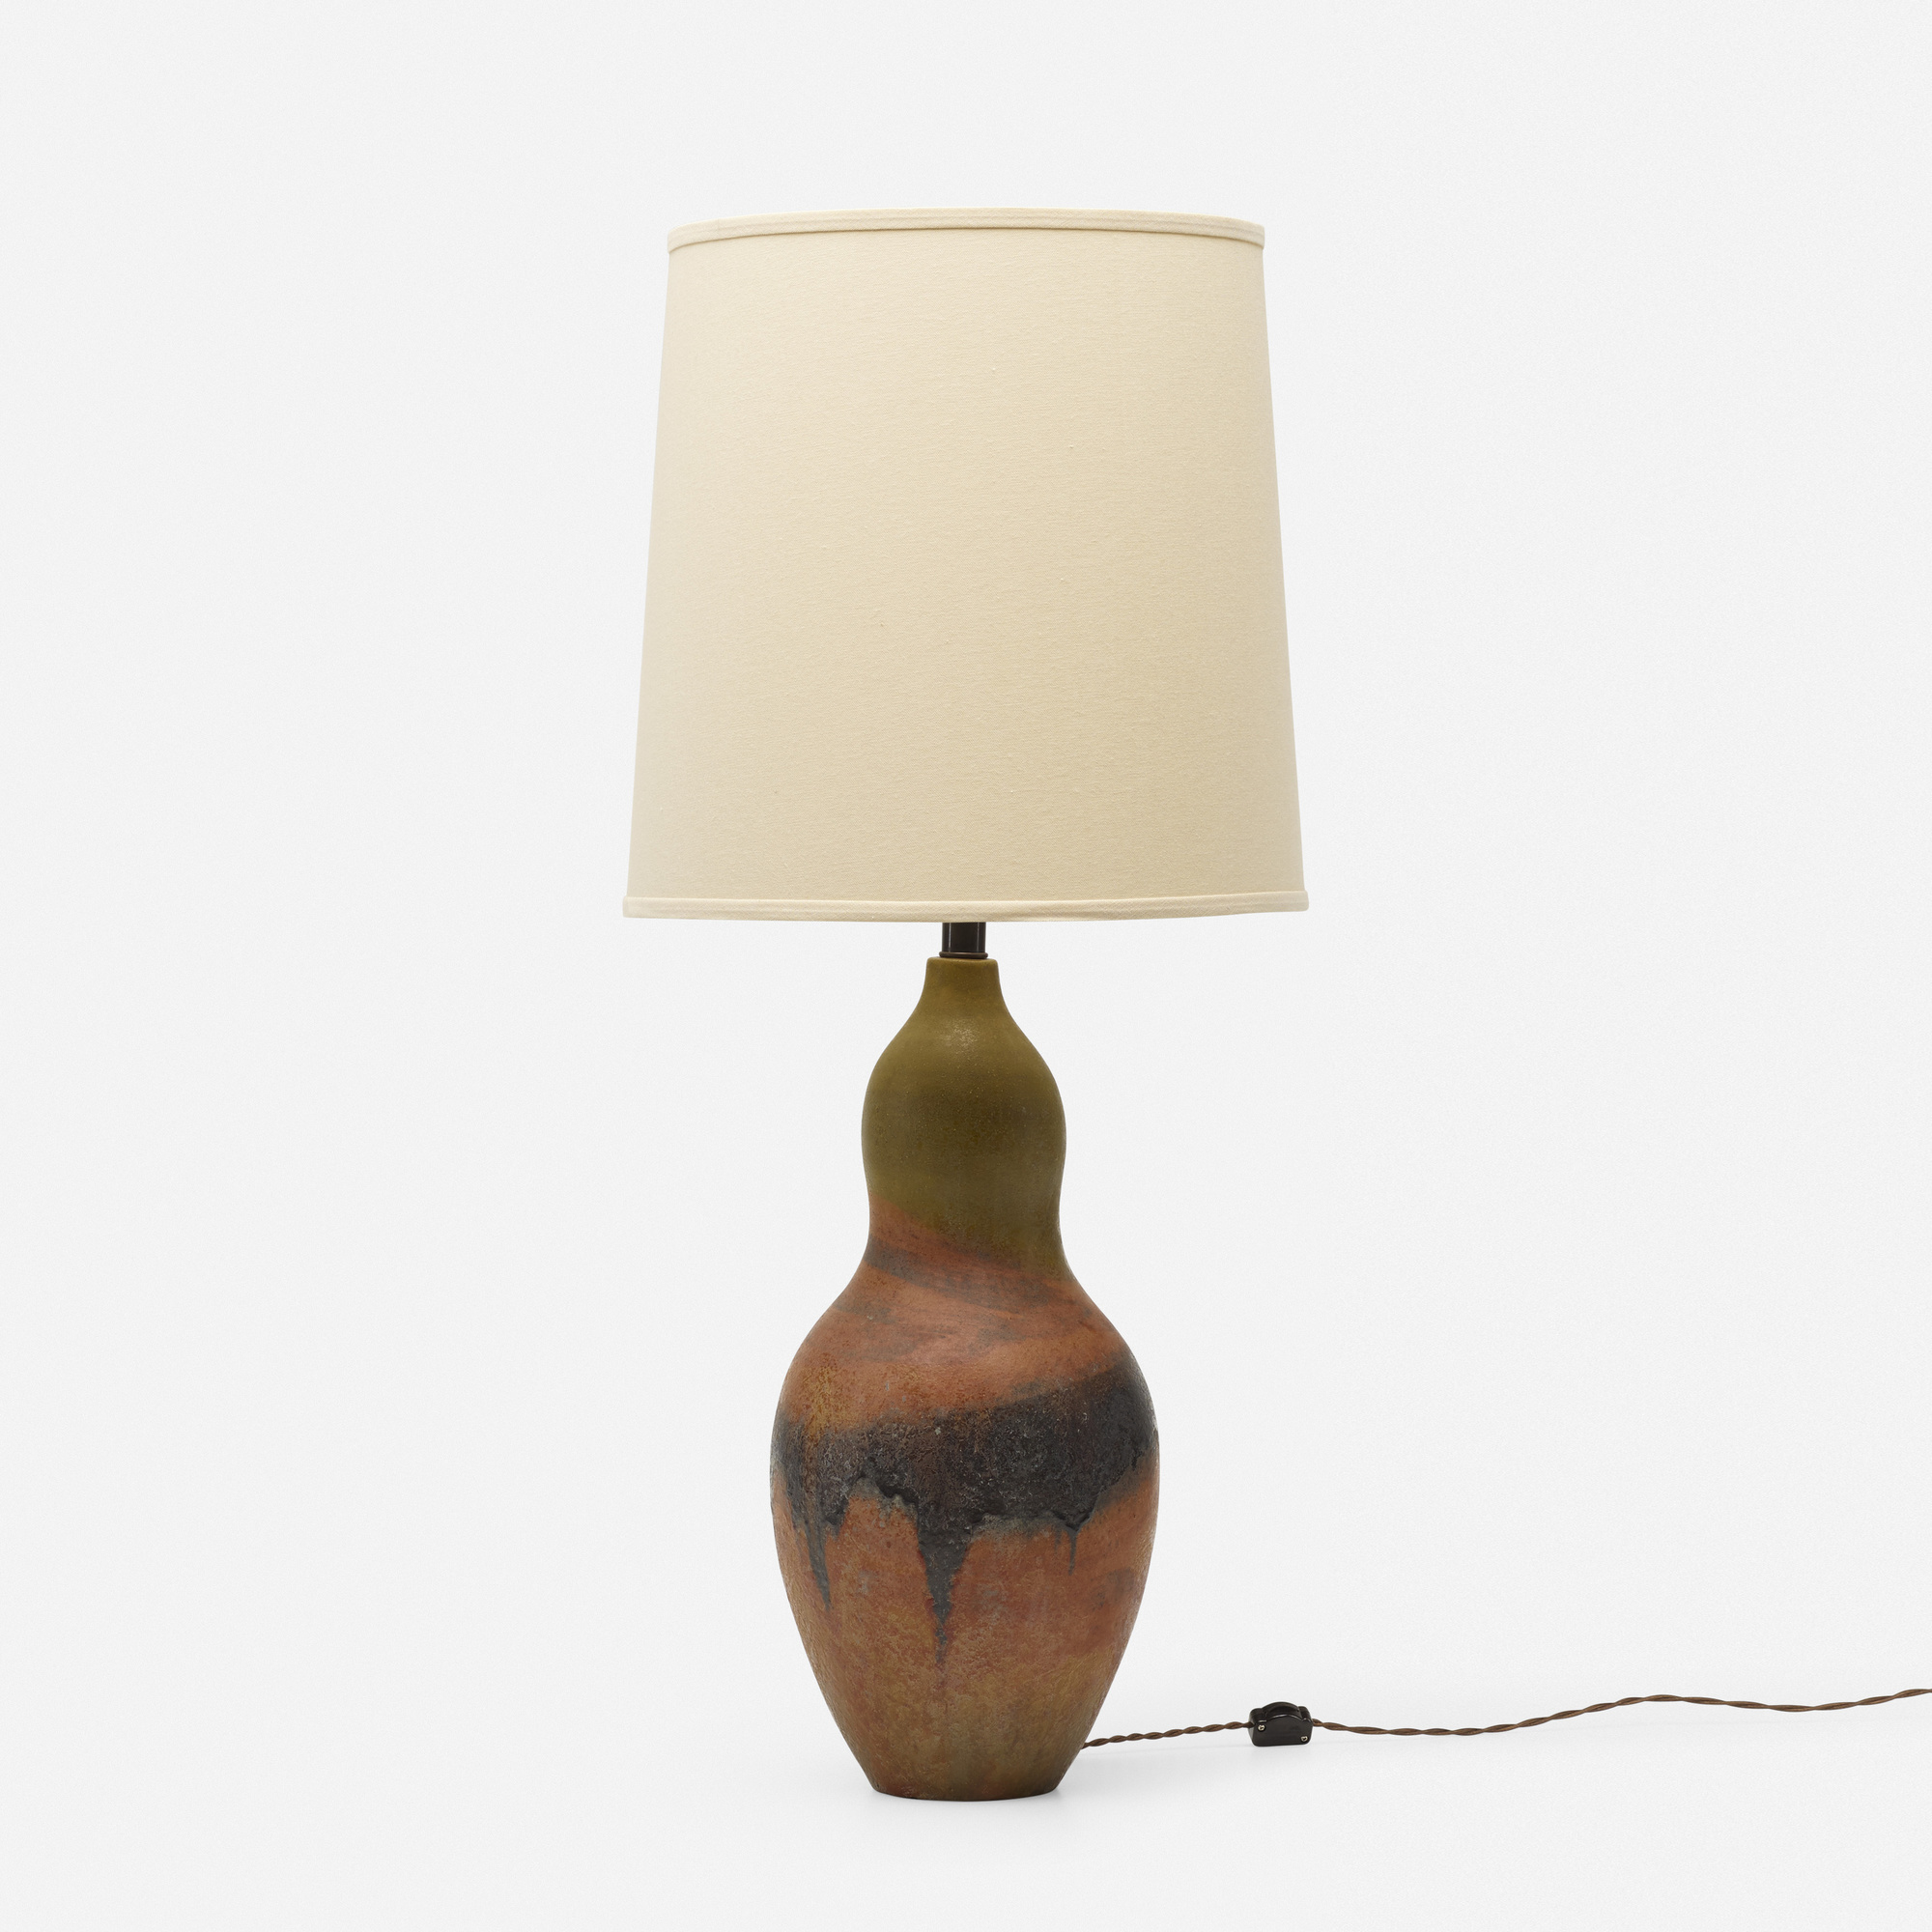 428: Marcello Fantoni / table lamp (1 of 2)